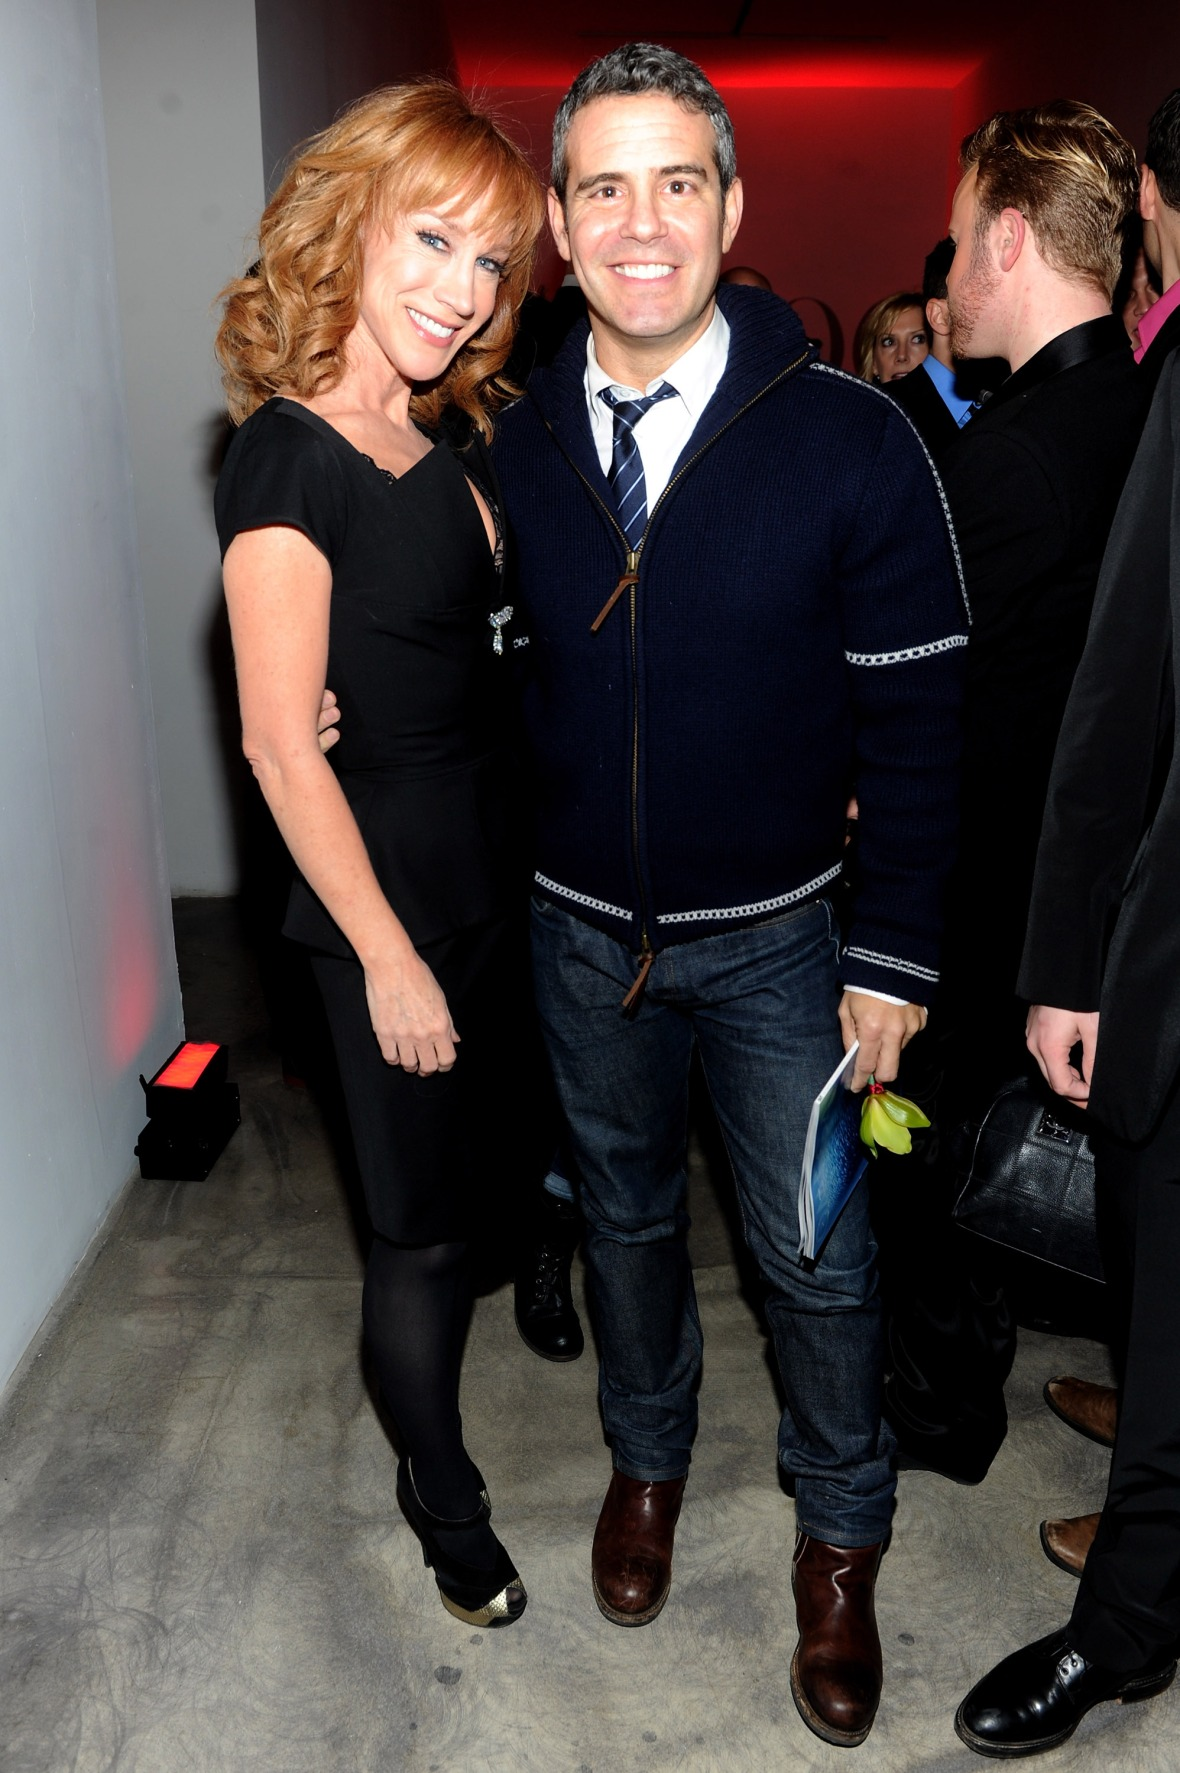 kathy griffin and andy cohen - getty